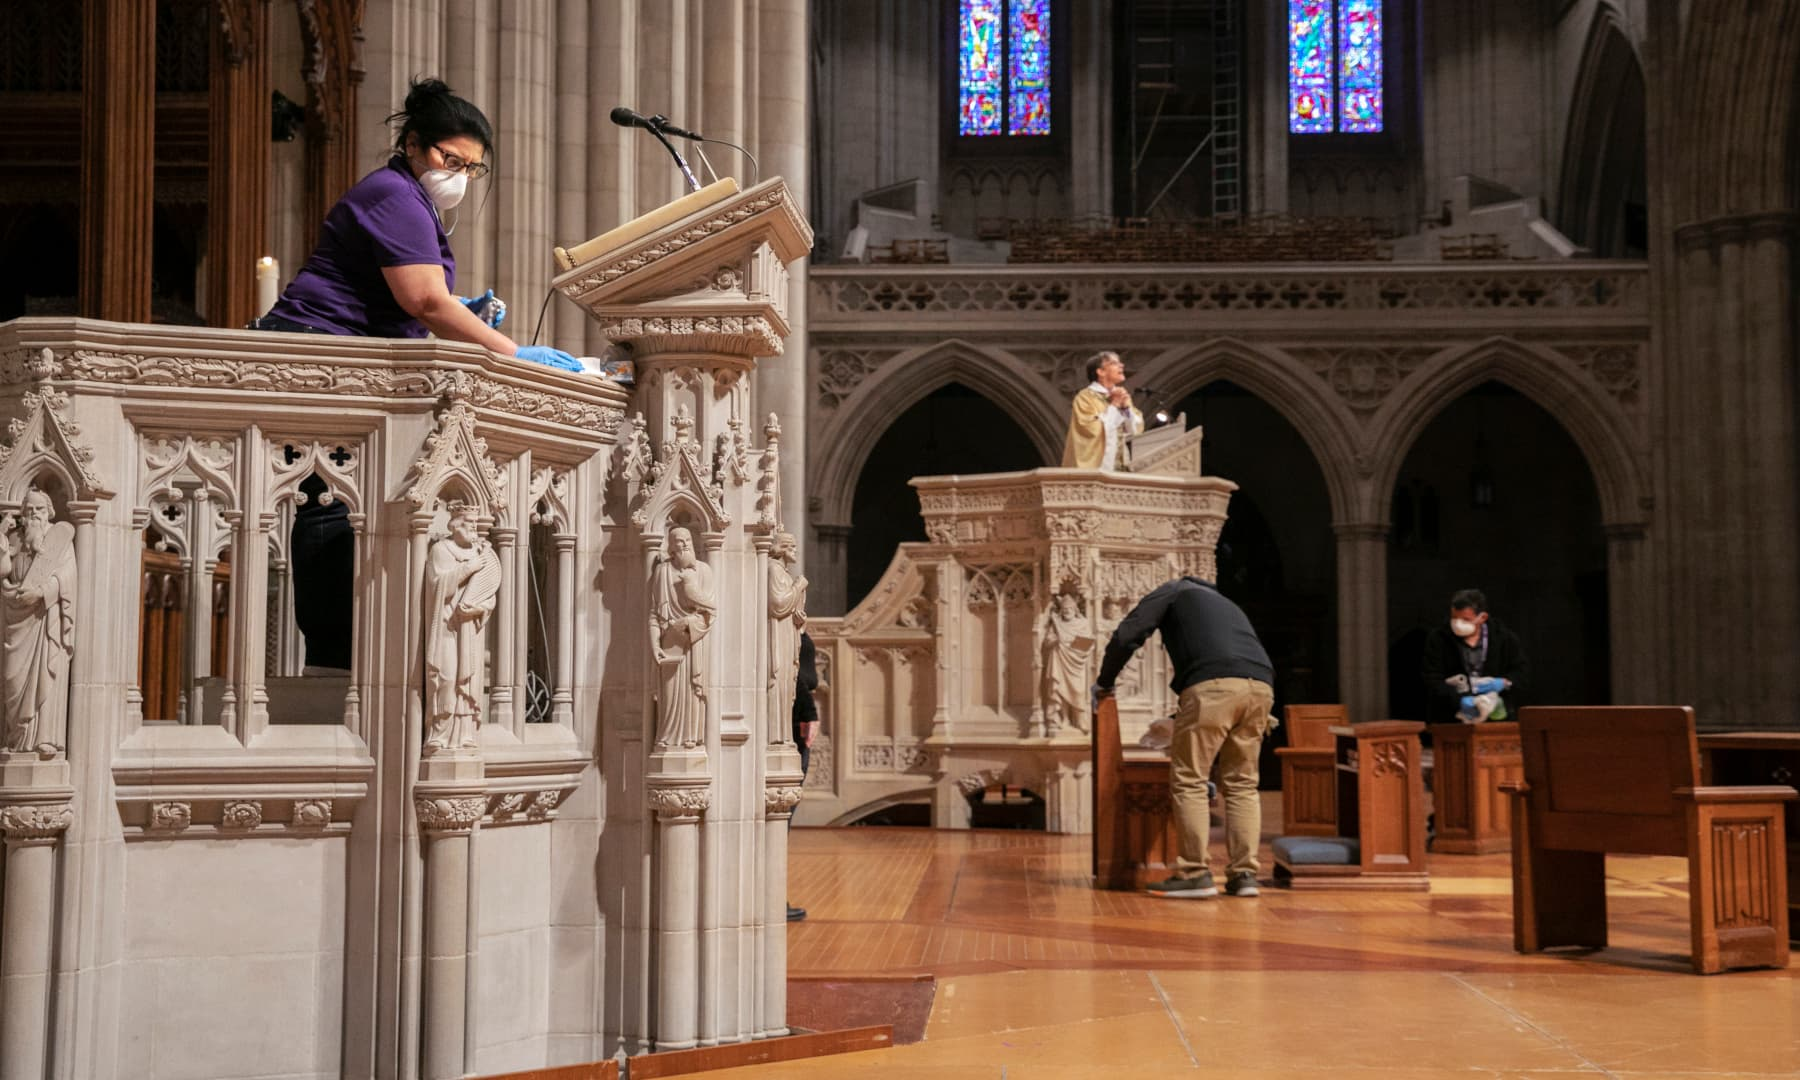 Wearing a face mask, Erlinda Ortega, top left, cleans a pulpit, while Bishop Mariann Edgar Budde, at centre, with the Episcopal Diocese of Washington, prepares to record a homily, after Budde led Easter Sunday services via livestream to an empty National Cathedral on April 12 in Washington, in light of coronavirus pandemic precautions. — AP